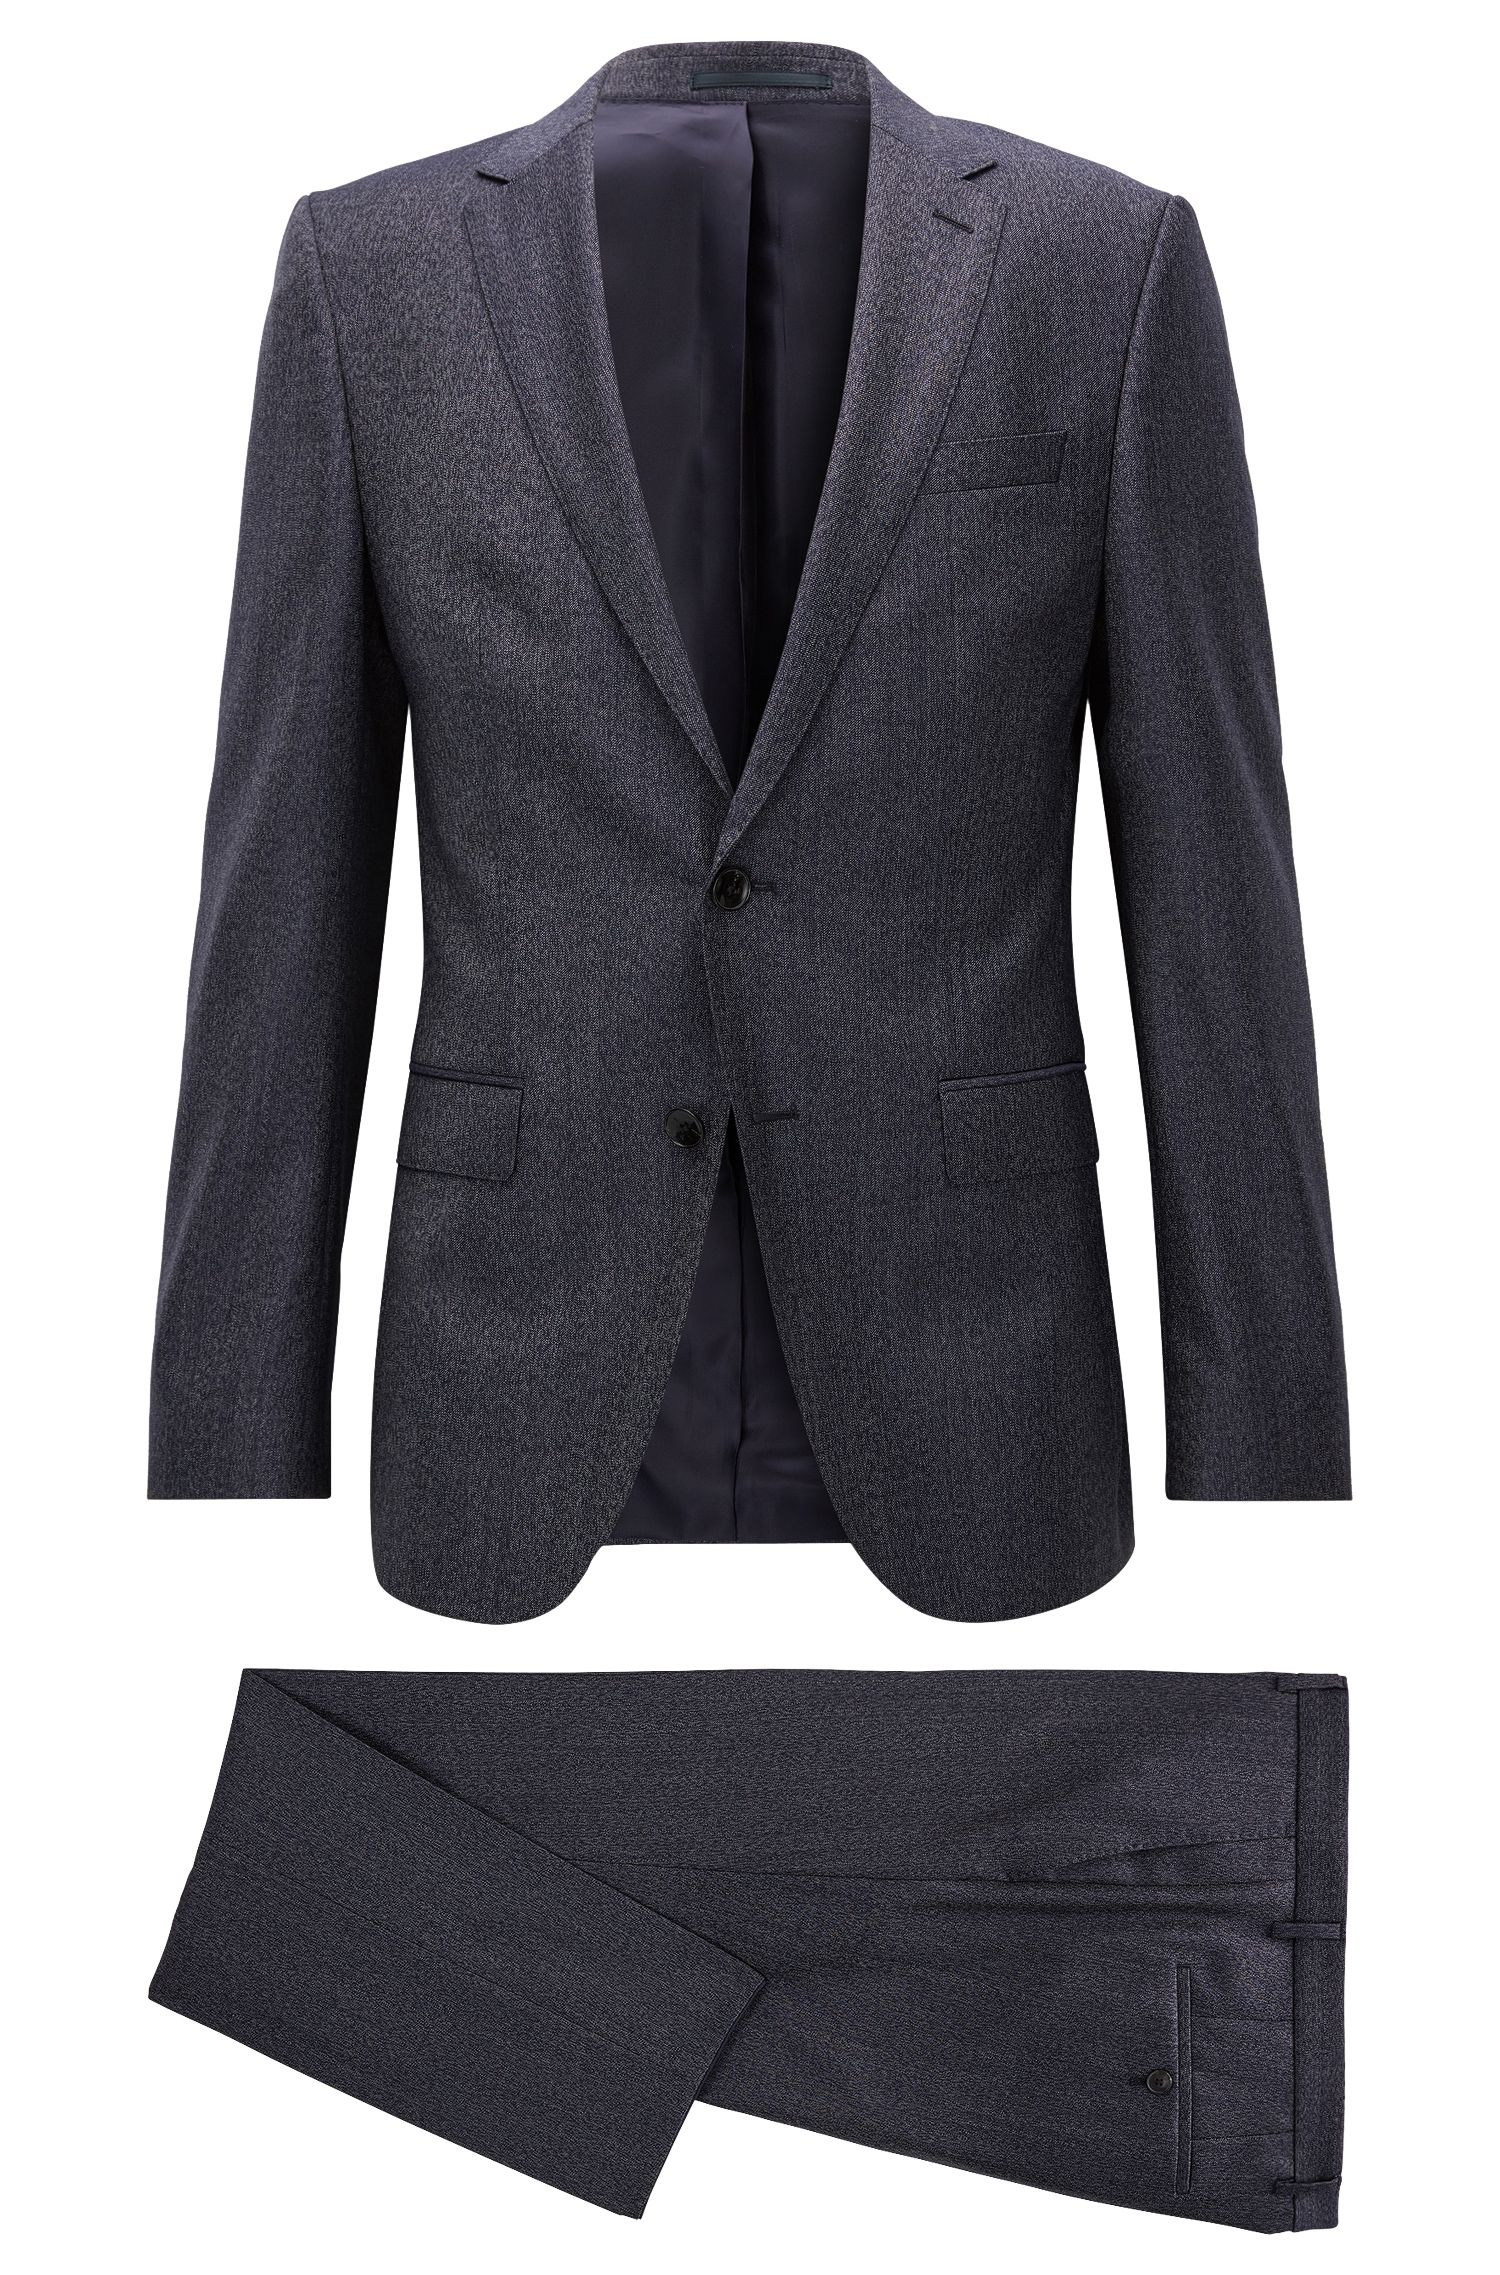 'Novan/Ben' | Slim Fit, Melange Super 100 Virgin Wool Suit